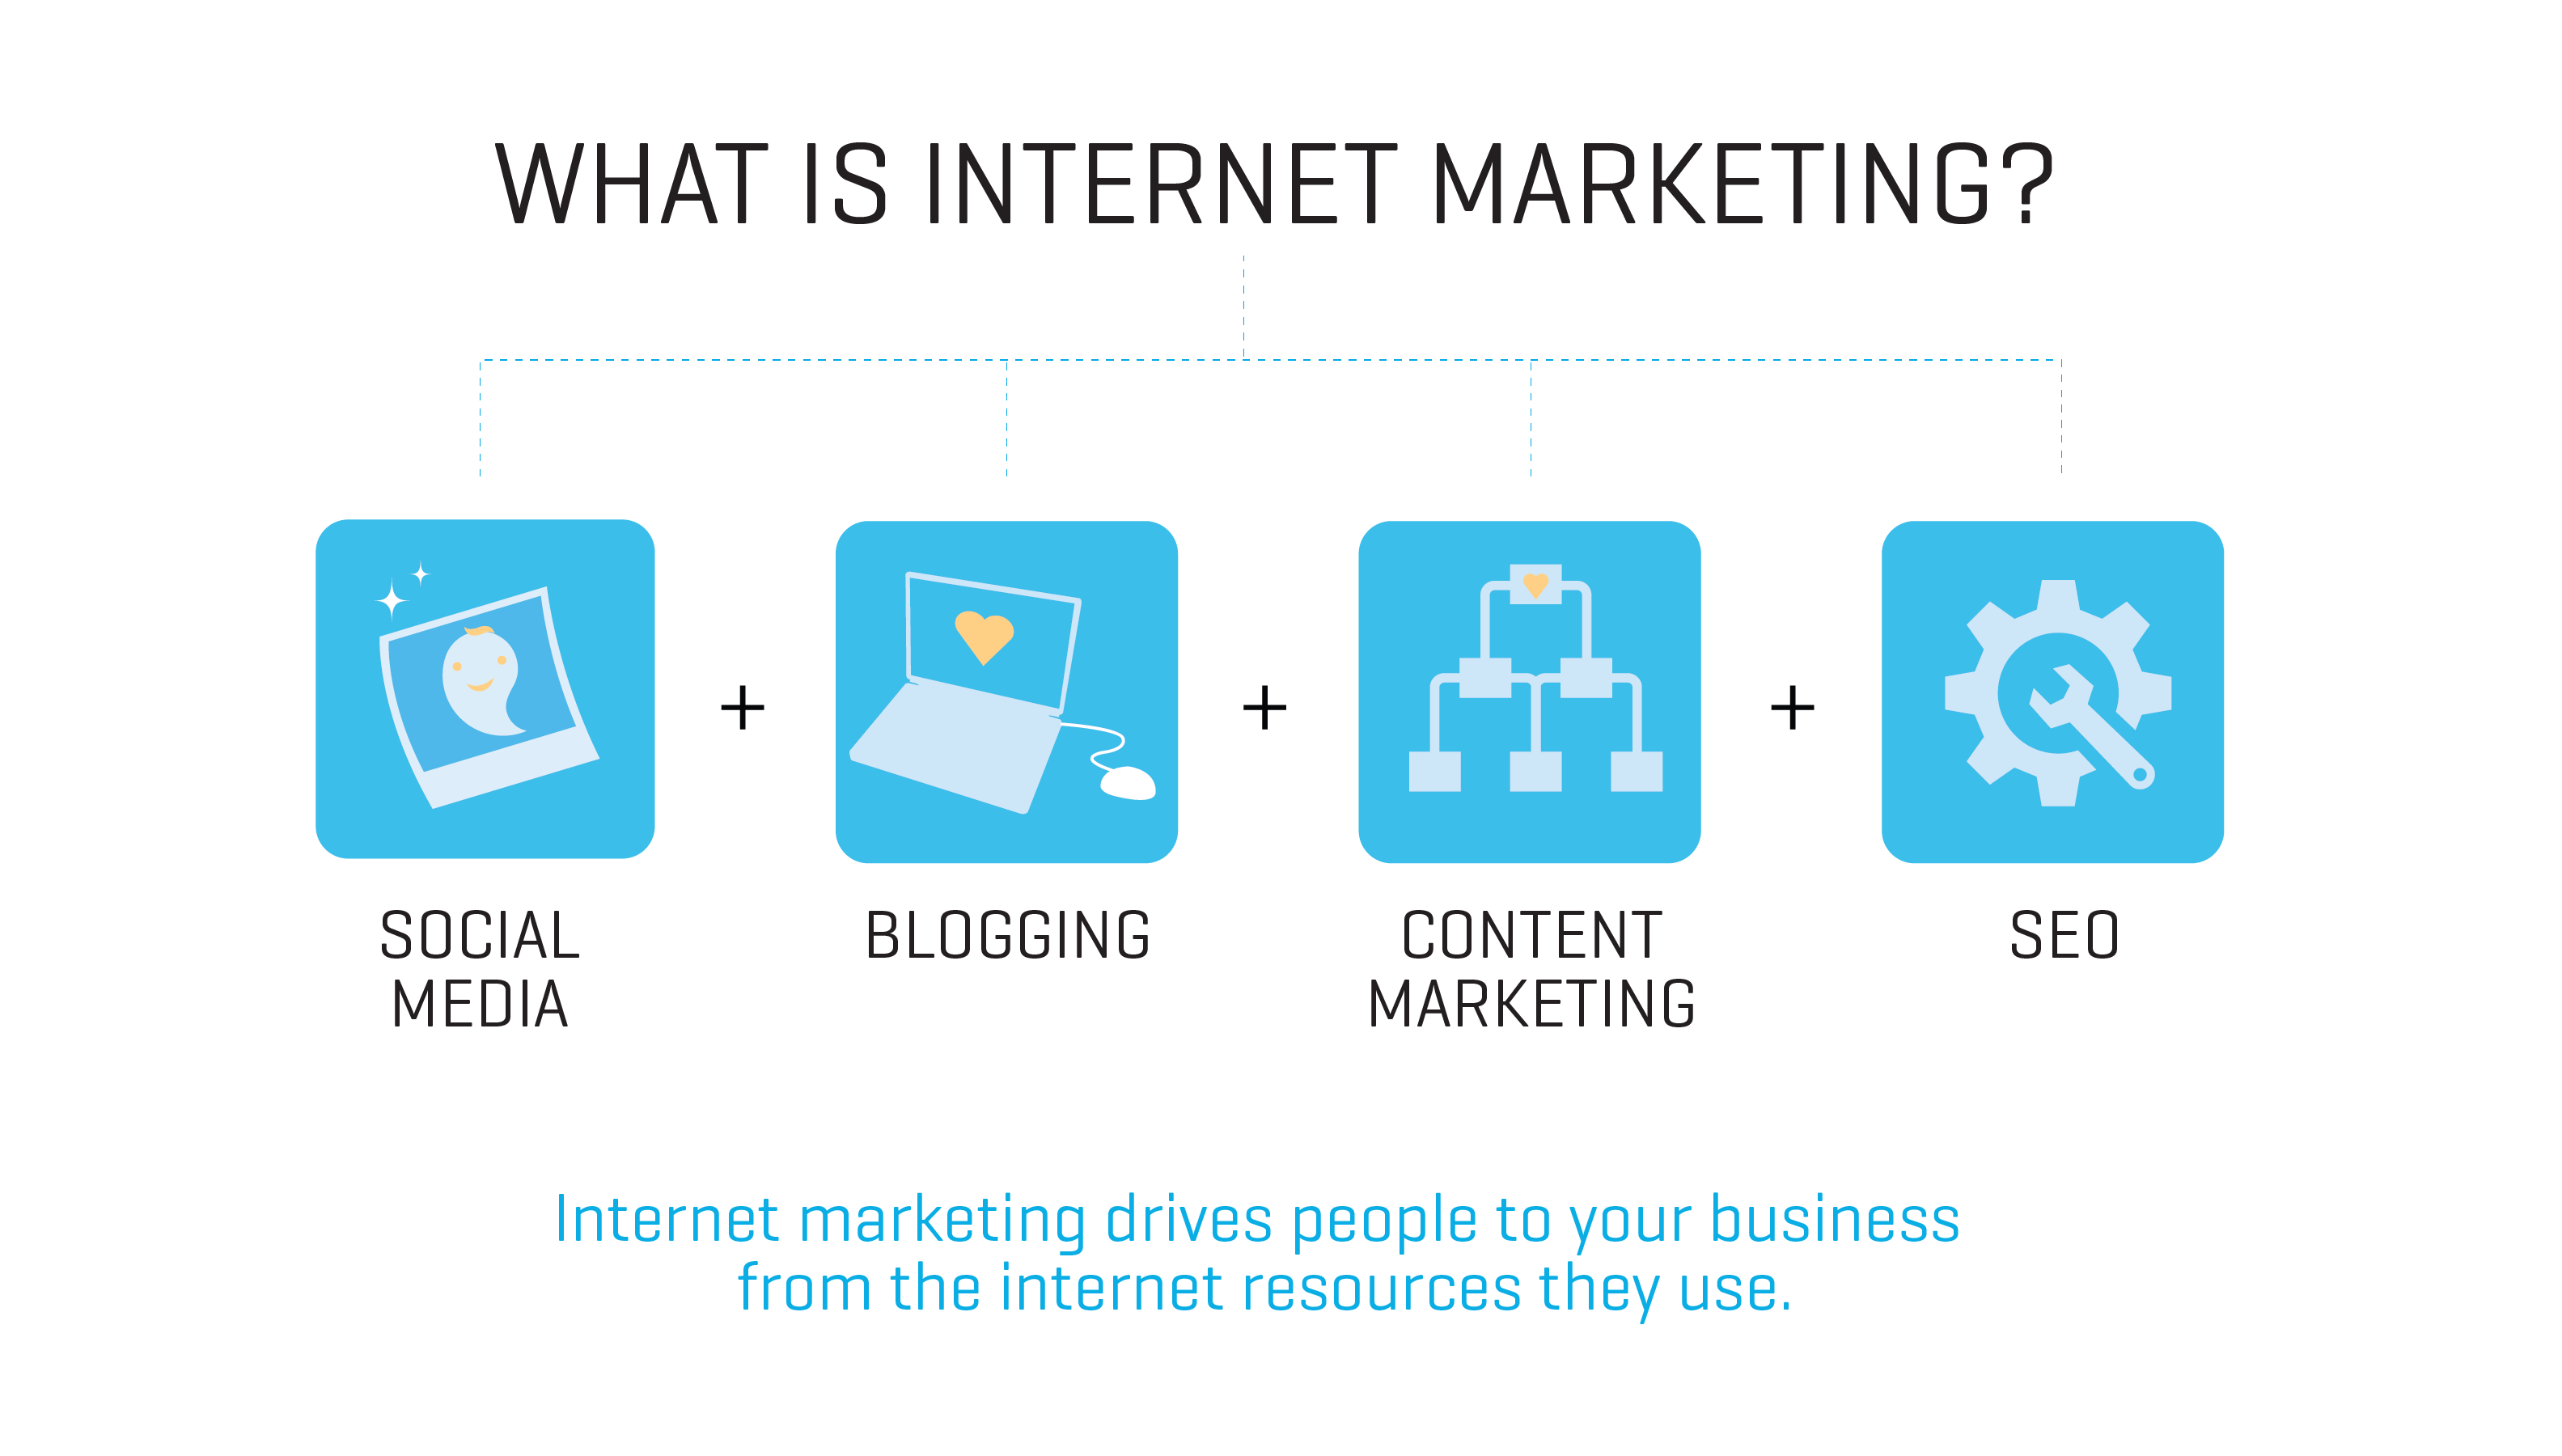 InternetMarketing-01